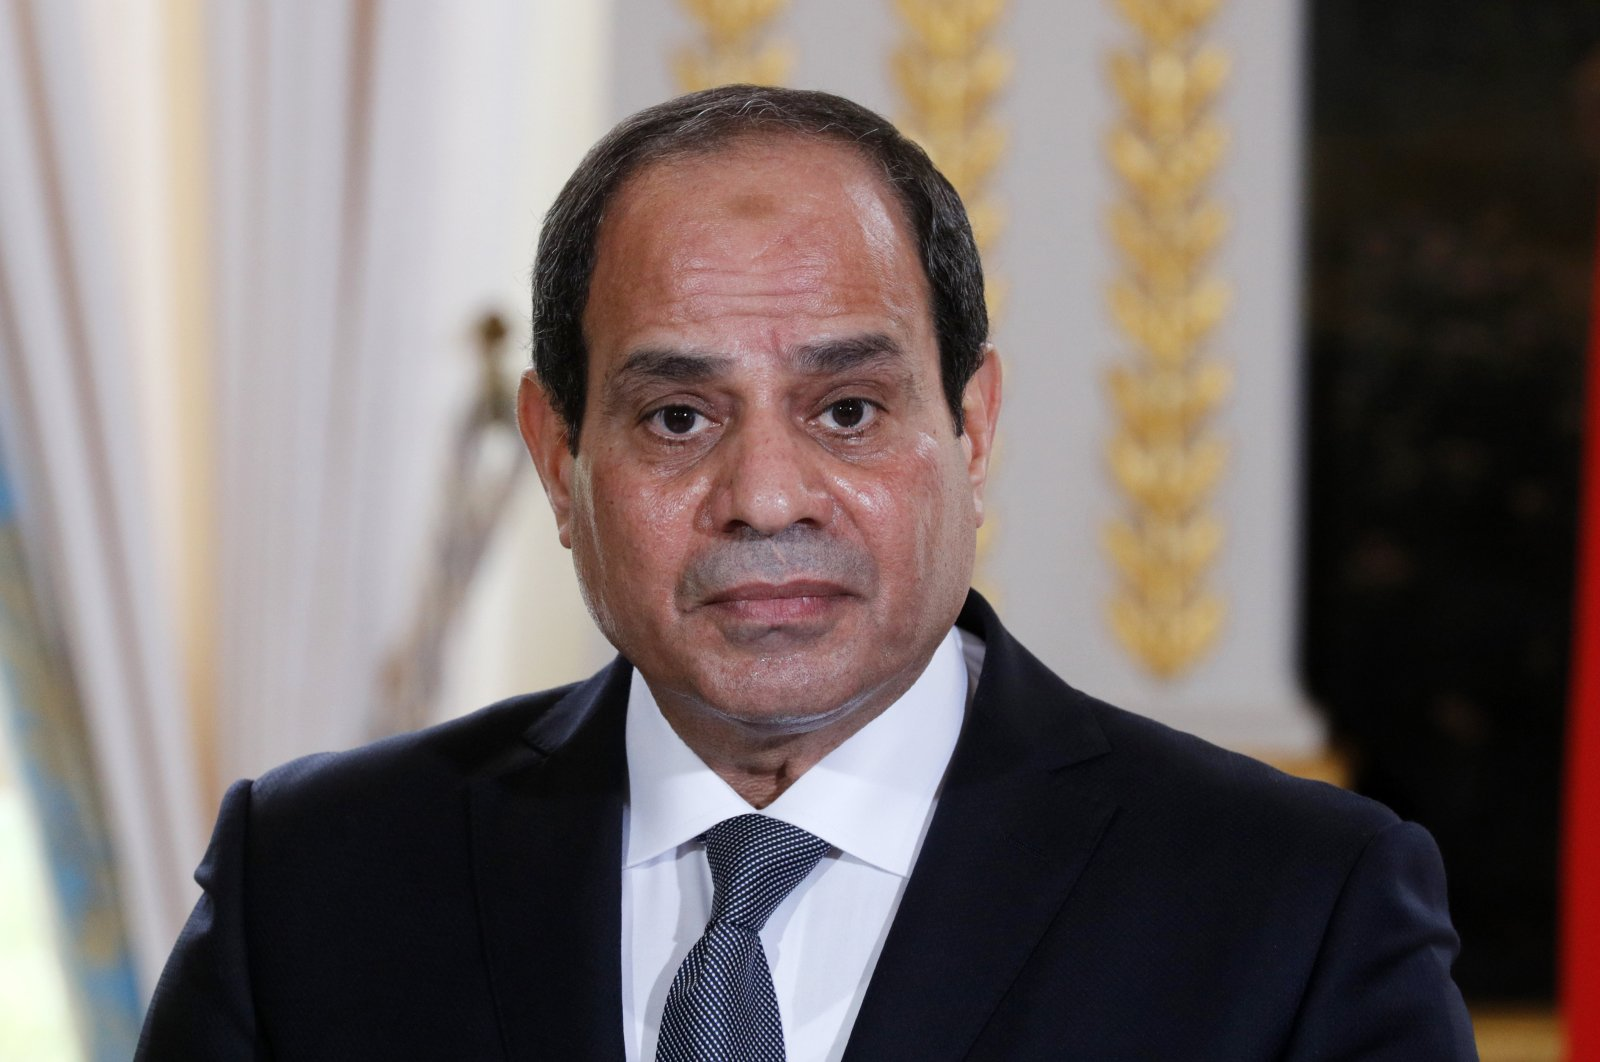 Egyptian President Abdel Fattah al-Sisi attends a news conference with French President Emmanuel Macron (not pictured) at the Elysee Palace, in Paris, Oct. 24, 2017.  (EPA)